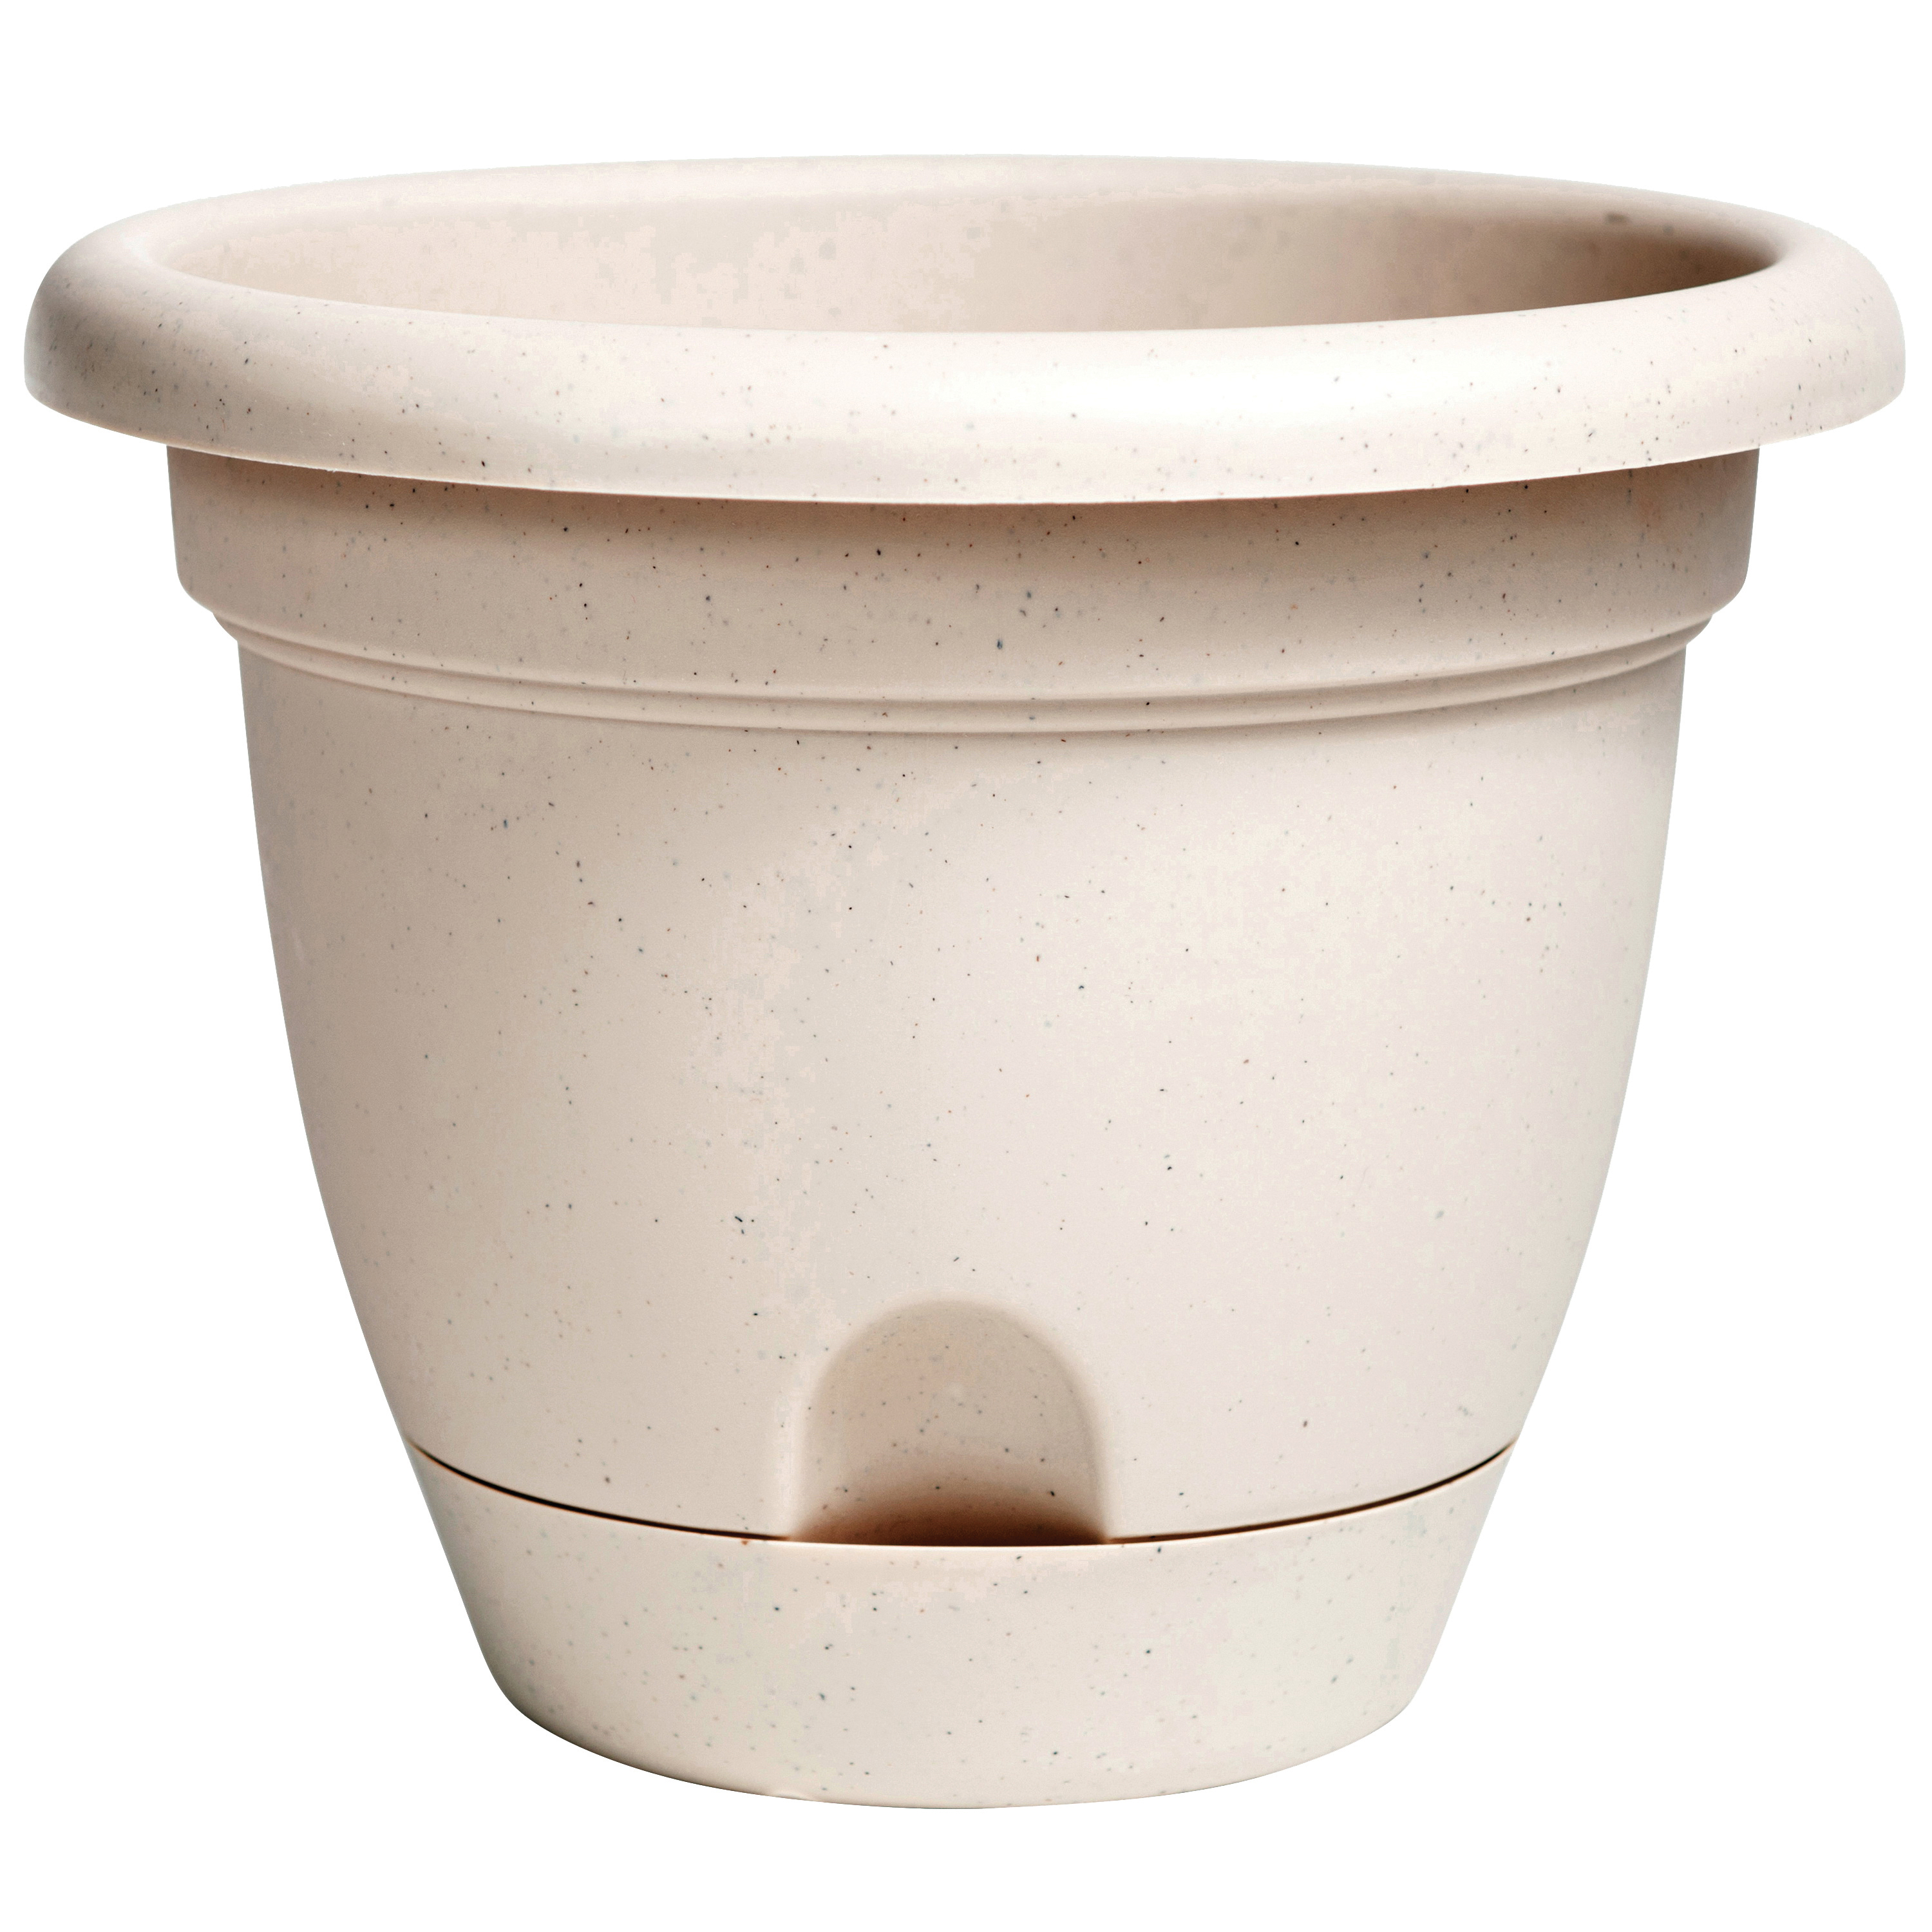 Picture of Bloem LP1035 Lucca Planter, 11 in W, Plastic, Taupe, Matte